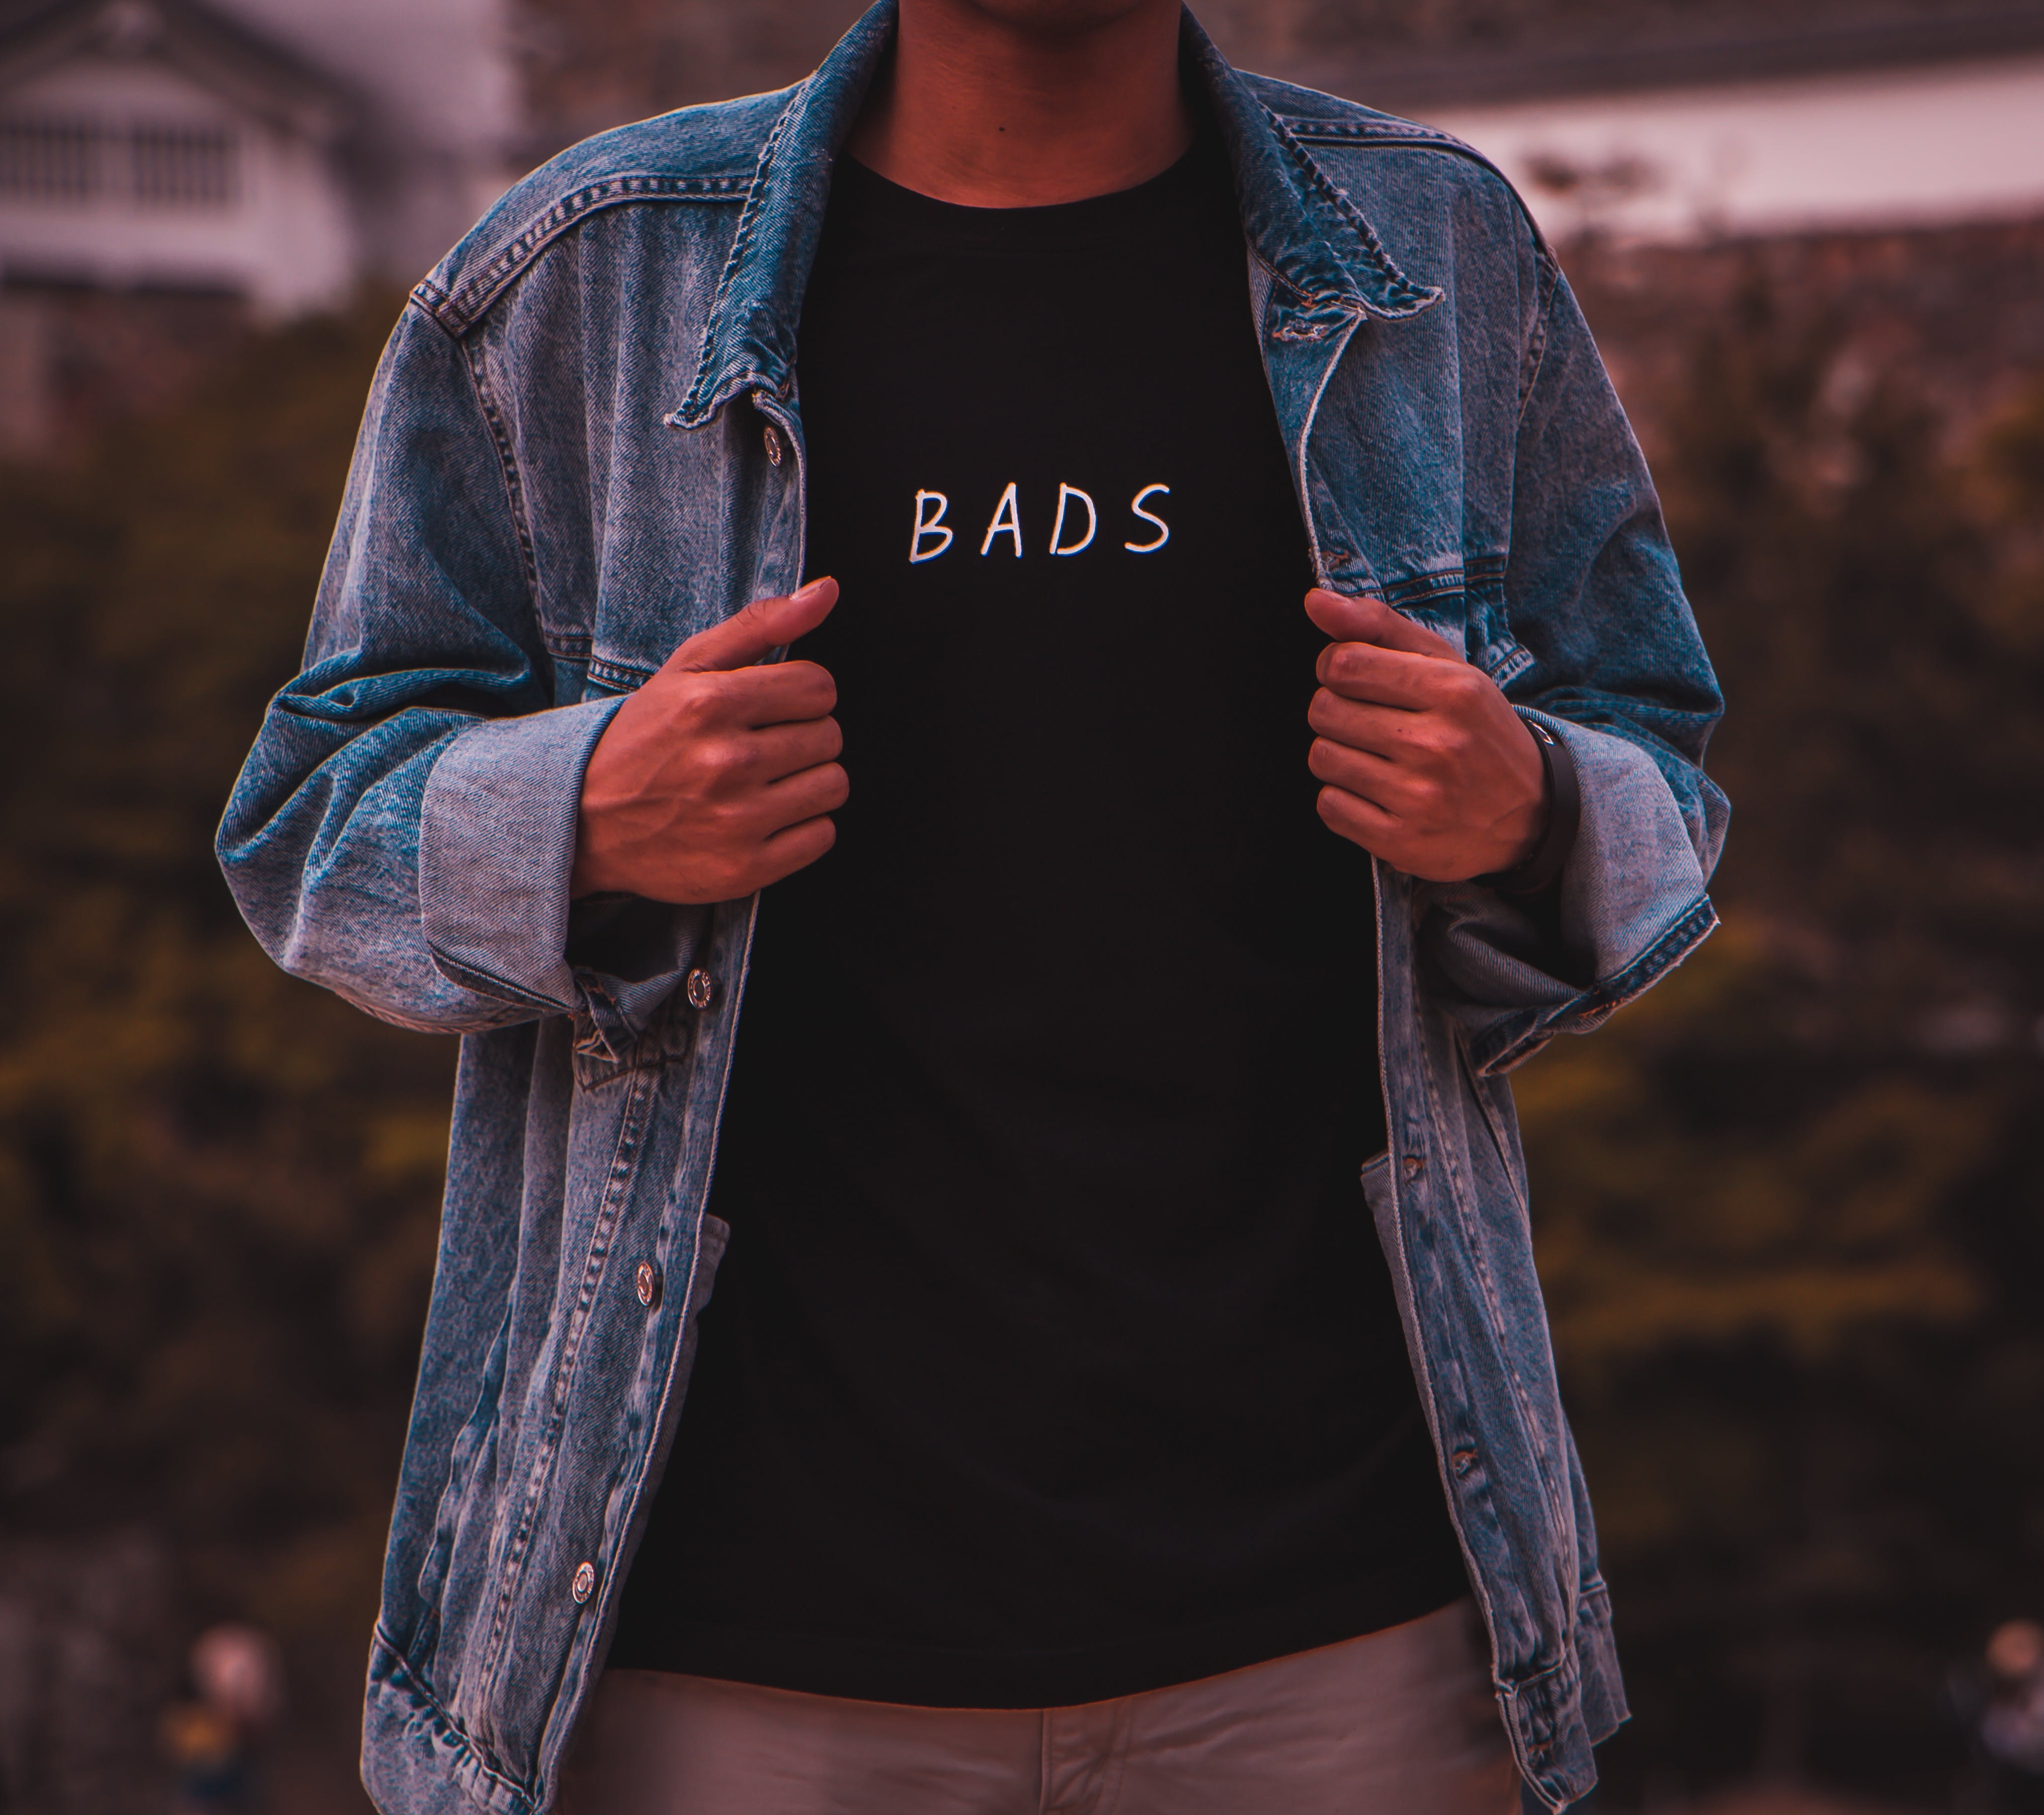 Man Wearing Black Bads Crew-neck Shirt Under Blue Denim Jacket